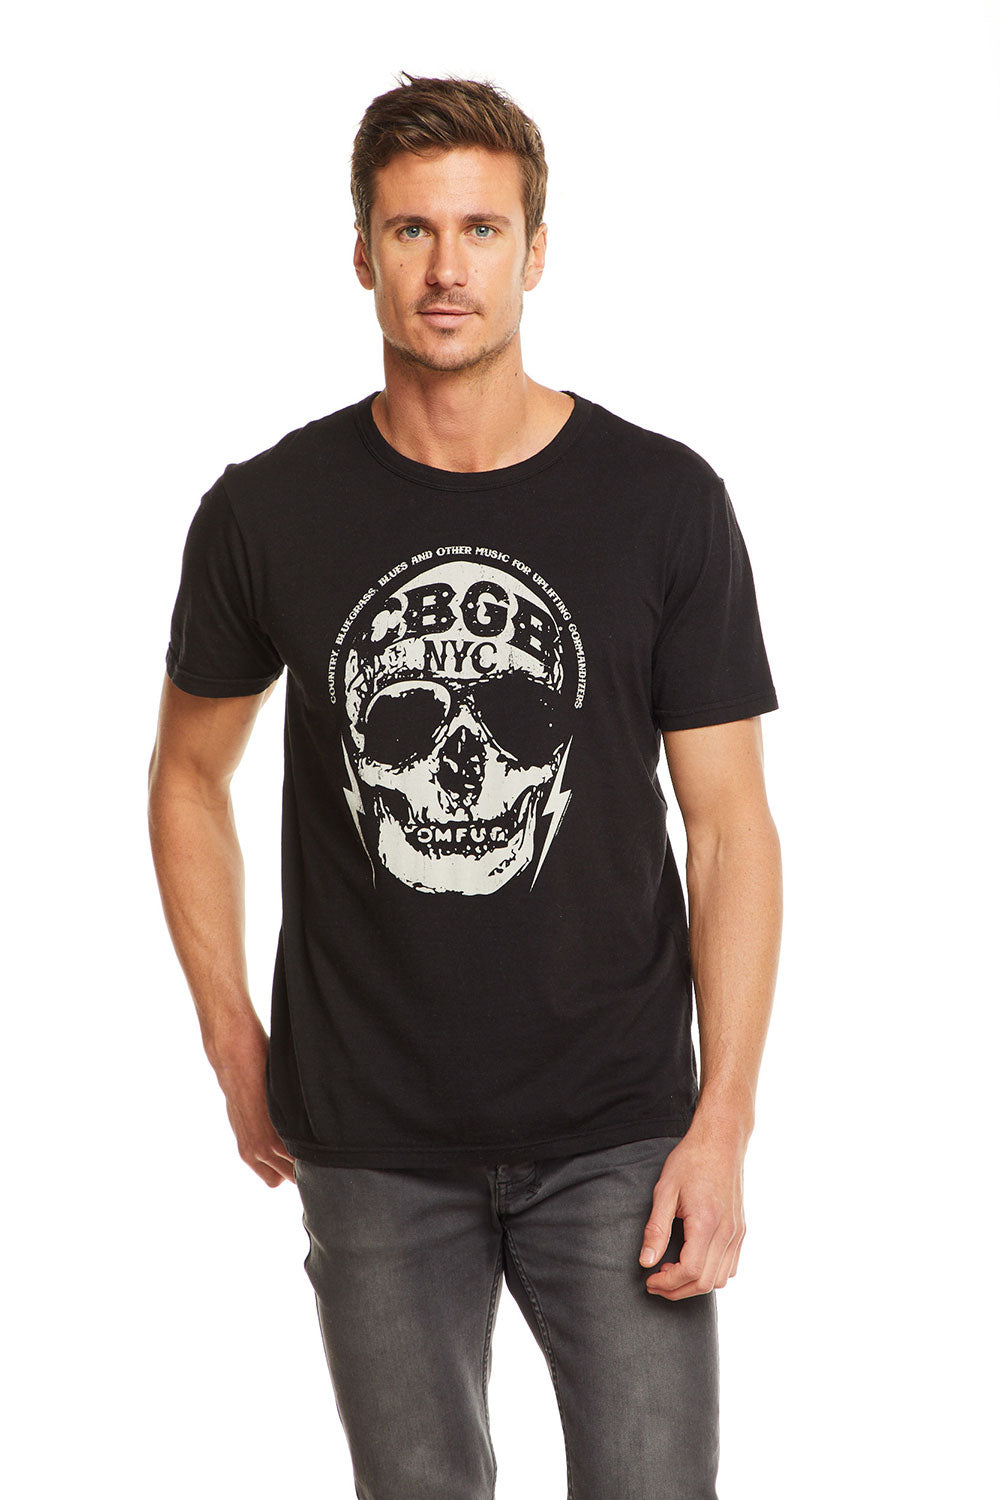 CBGB - CBGB Skull, MENS, chaserbrand.com,chaser clothing,chaser apparel,chaser los angeles